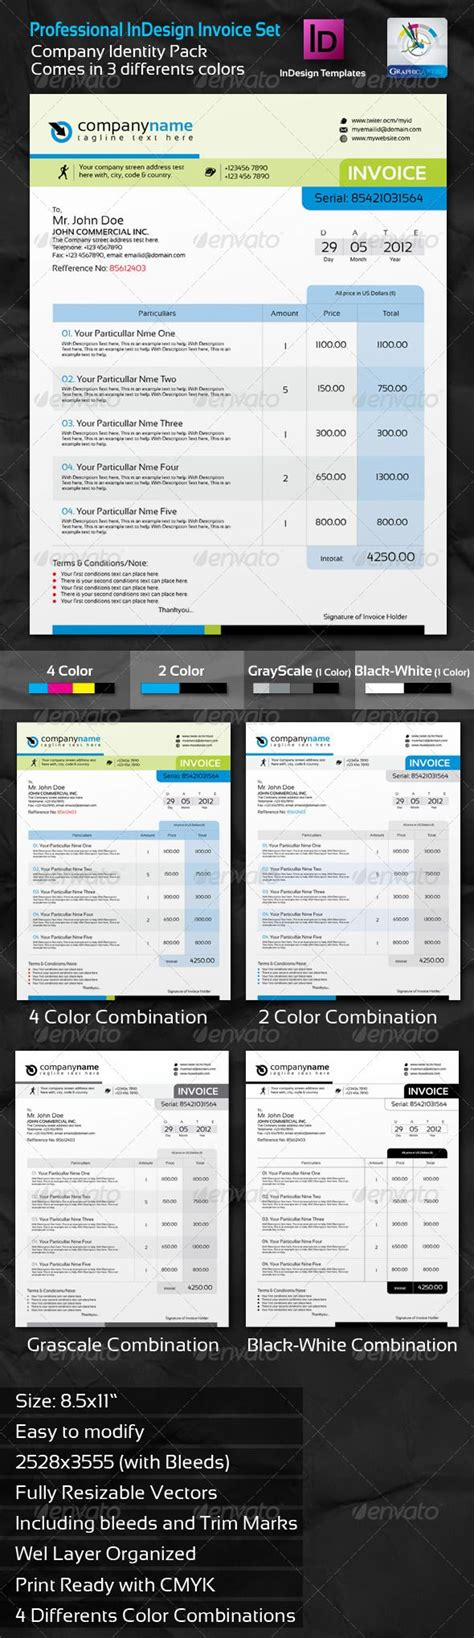 Professional Invoice Indesign Template Set Fonts Invoice Template And Colors Photo Essay Template Indesign